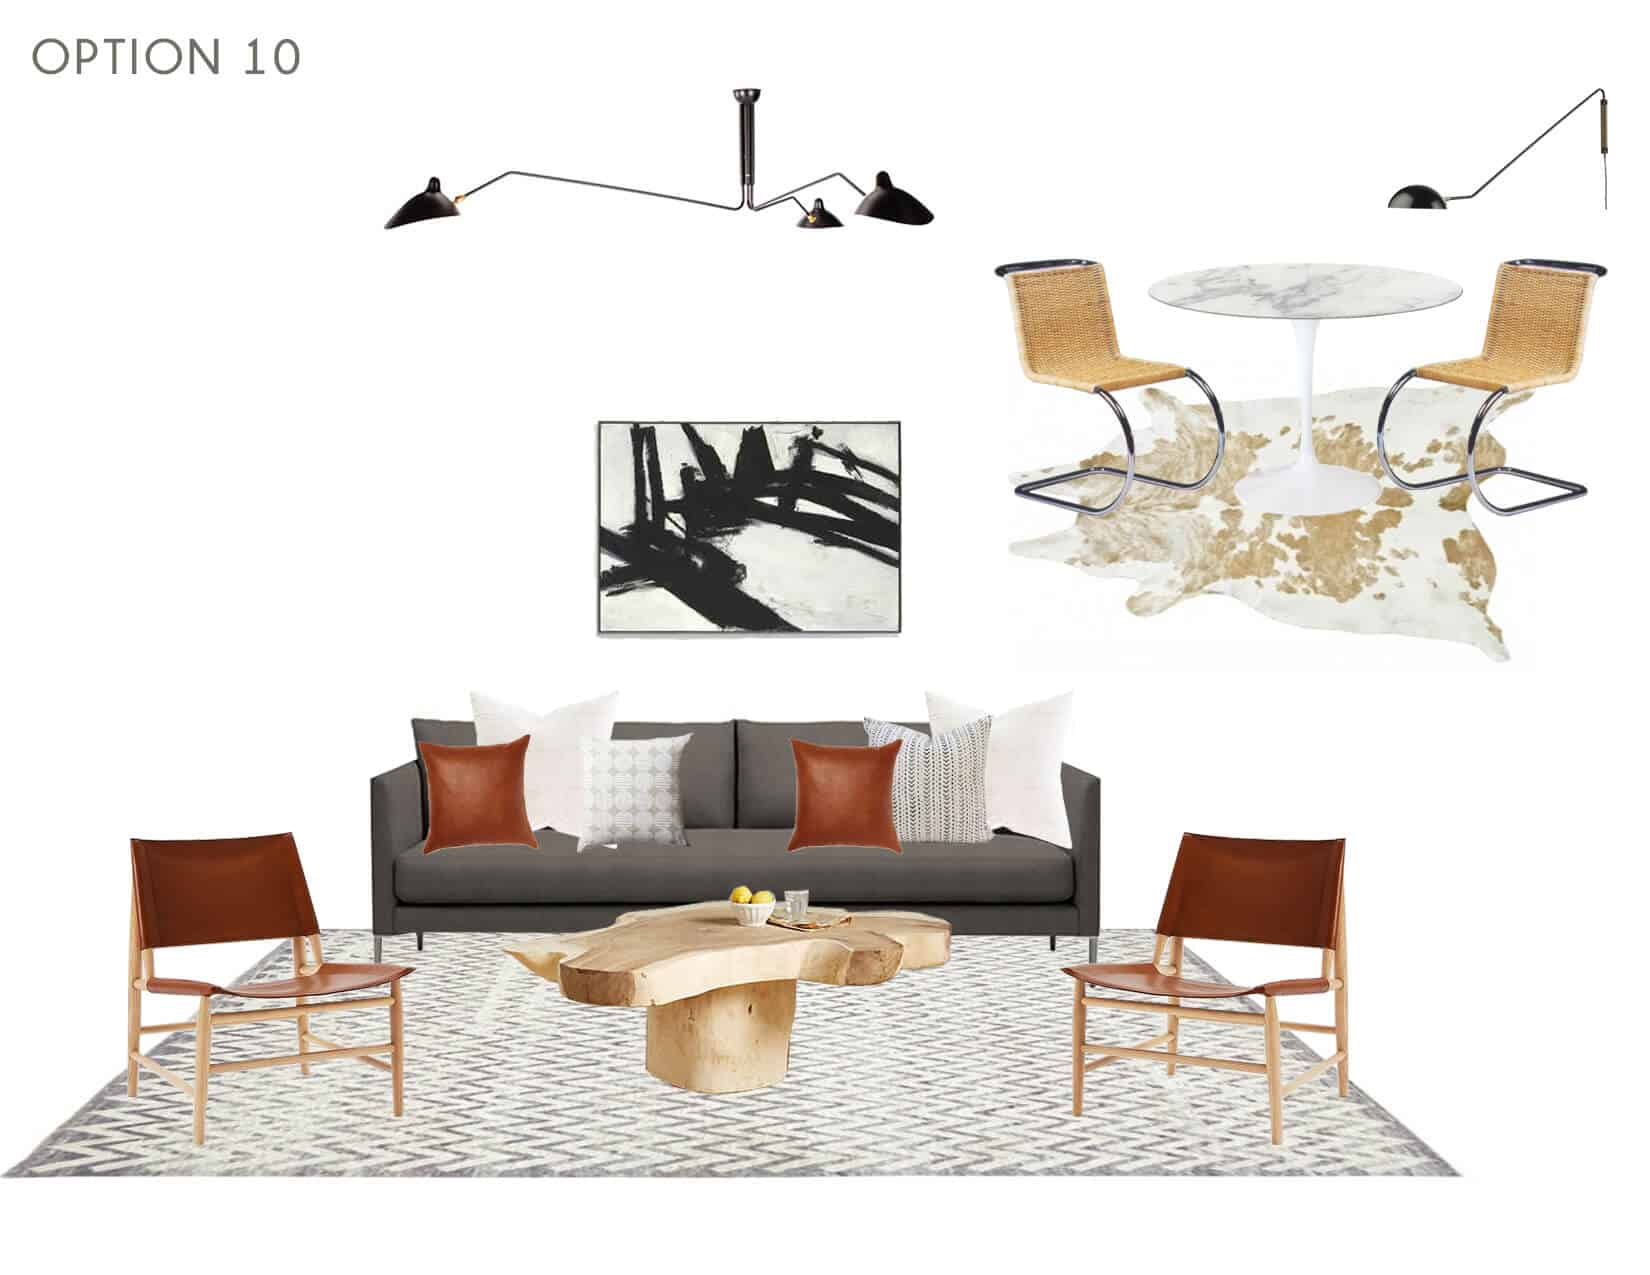 Emily Henderson_Full Design_Sunroom_Introduction_Moodboard_Option 10